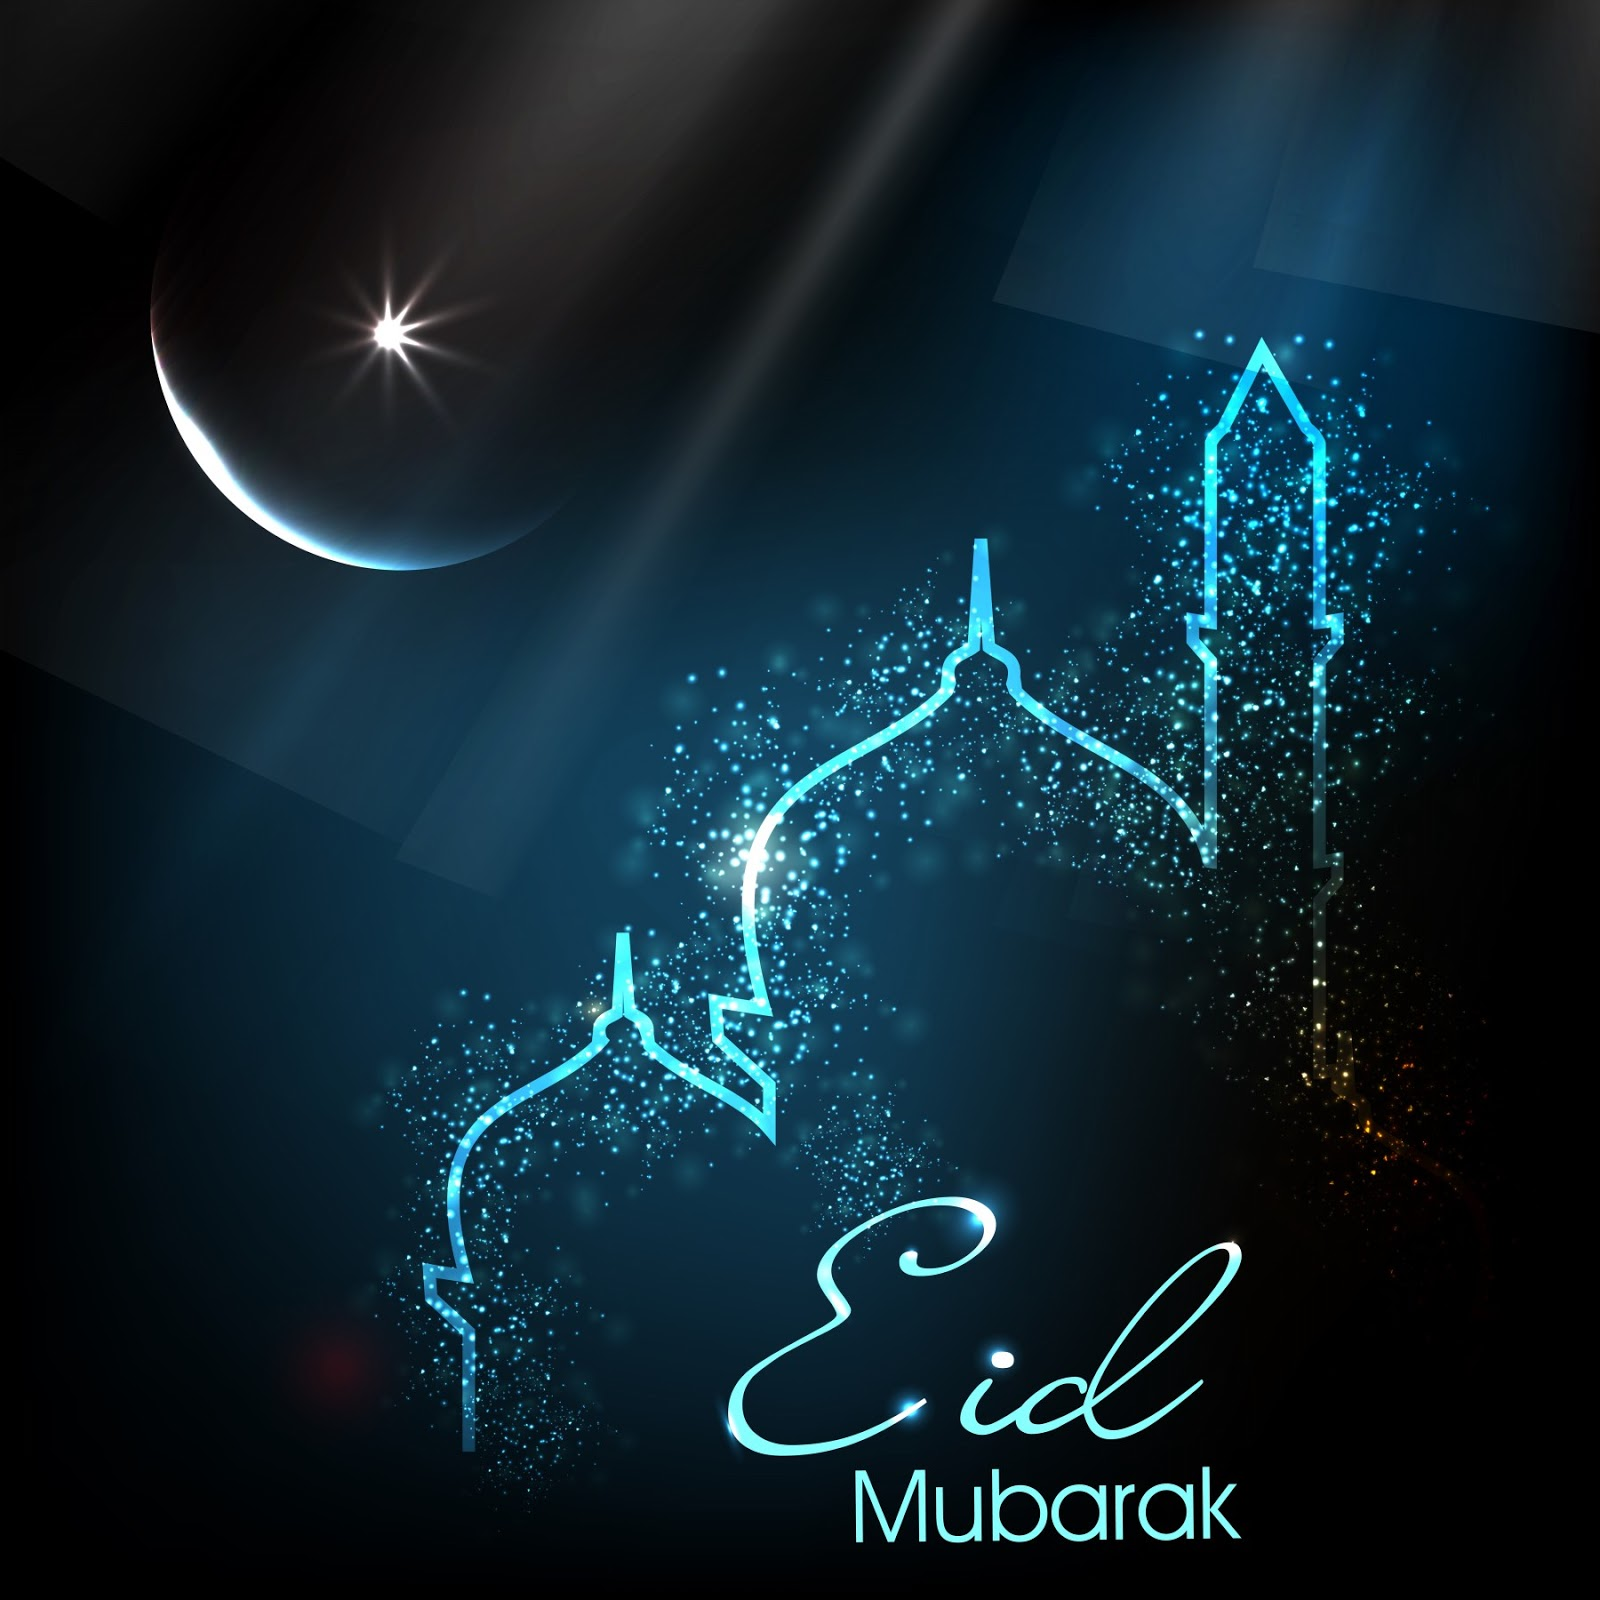 Eid Mubarak Images, HD Wallpapers, Photos for Whatsapp DP ...